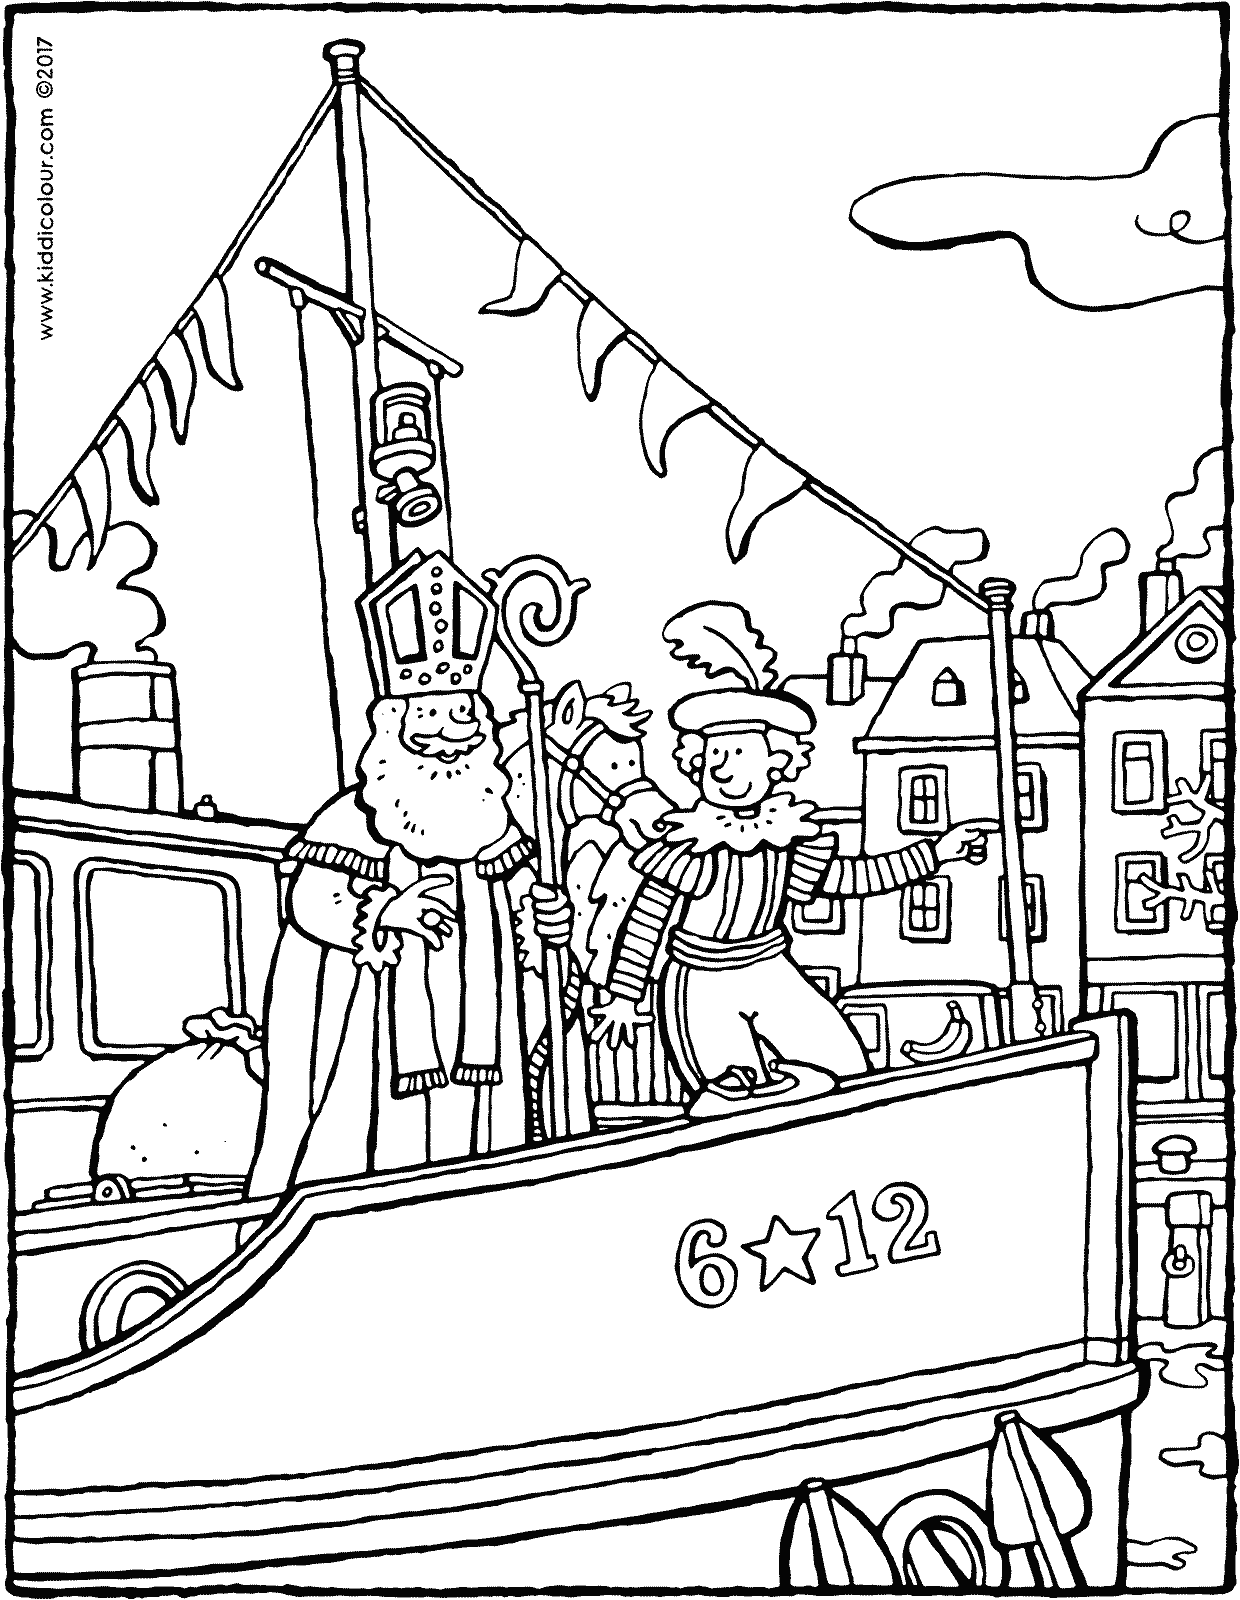 Saint Nicholas and Pete on the steamboat colouring page page drawing picture 01V